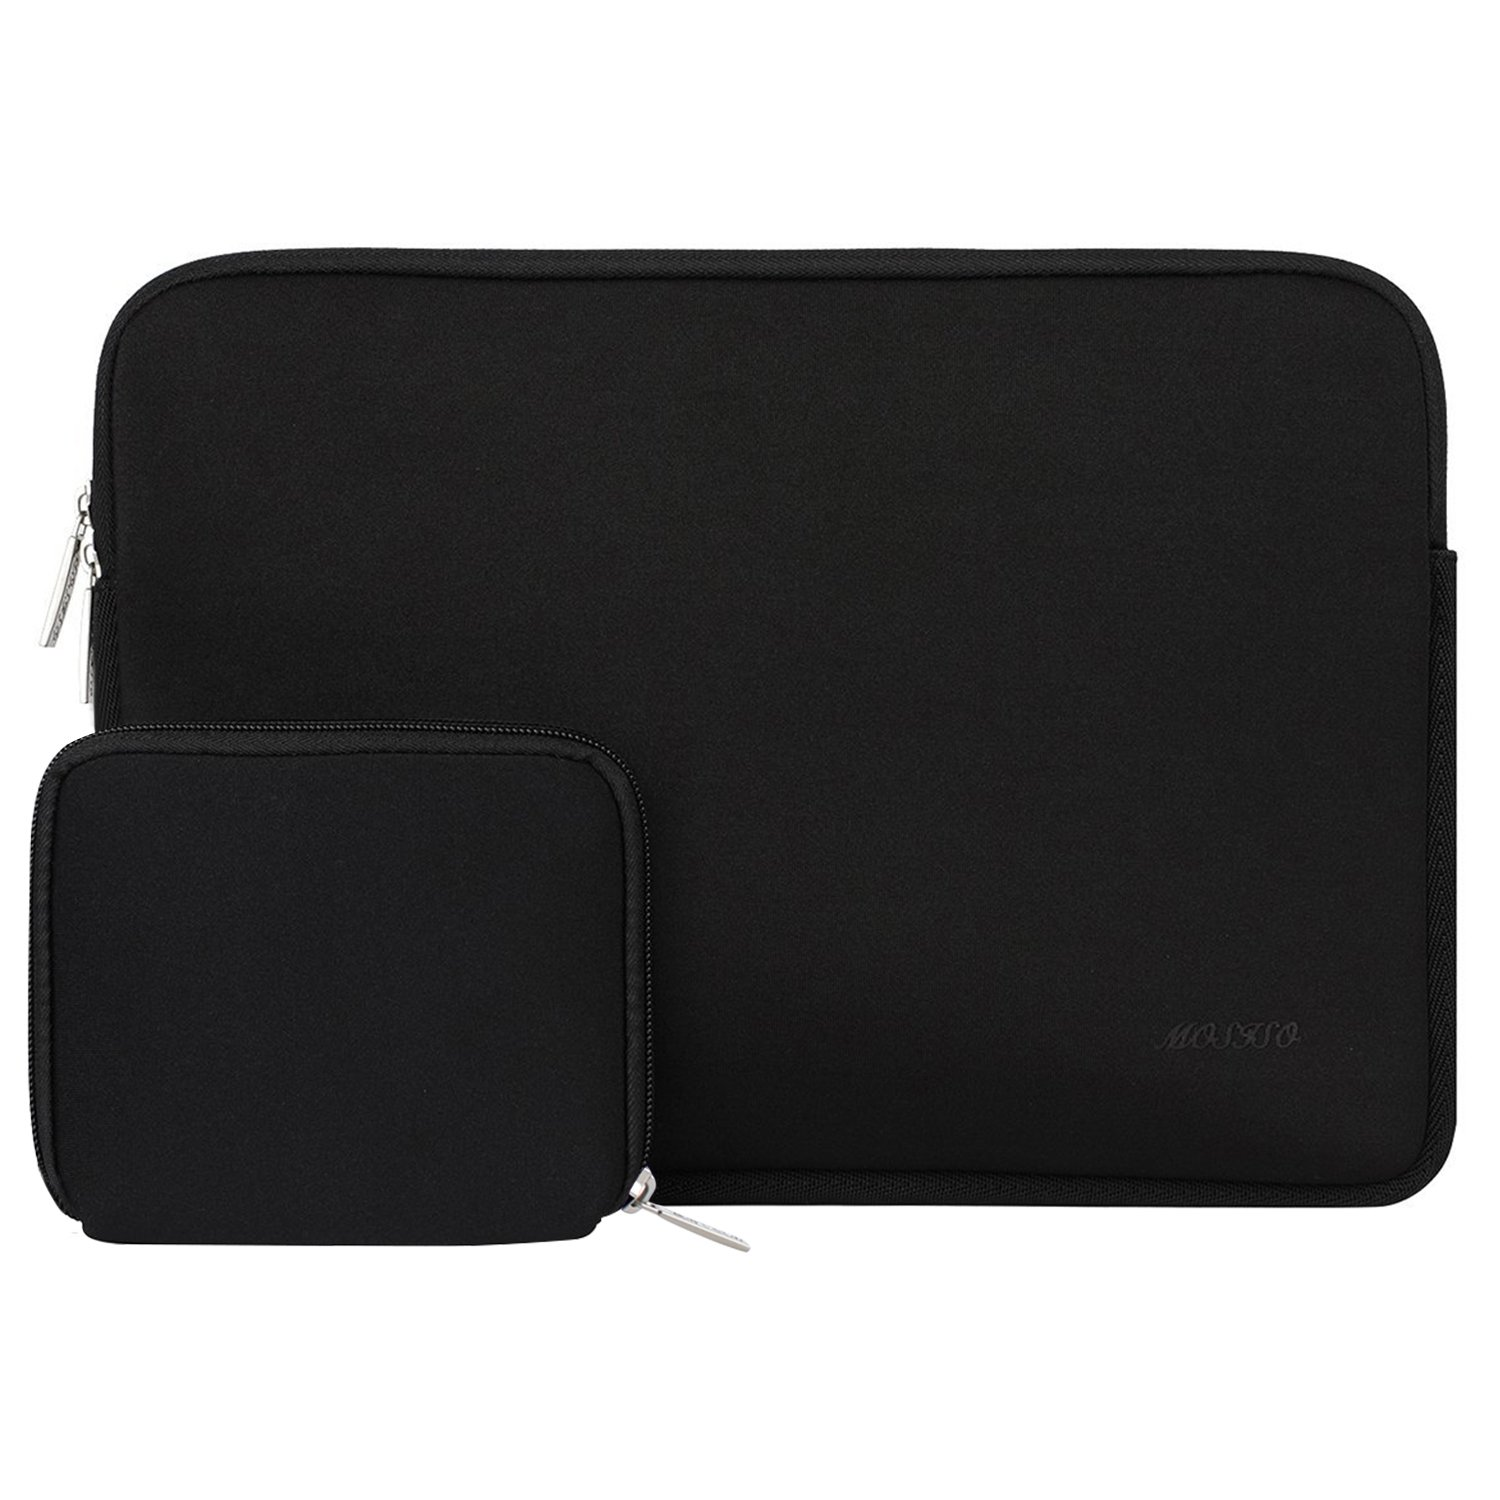 MOSISO Water Repellent Neoprene Sleeve Bag Cover Compatible 13-13.3 Inch Laptop with Small Case, Black